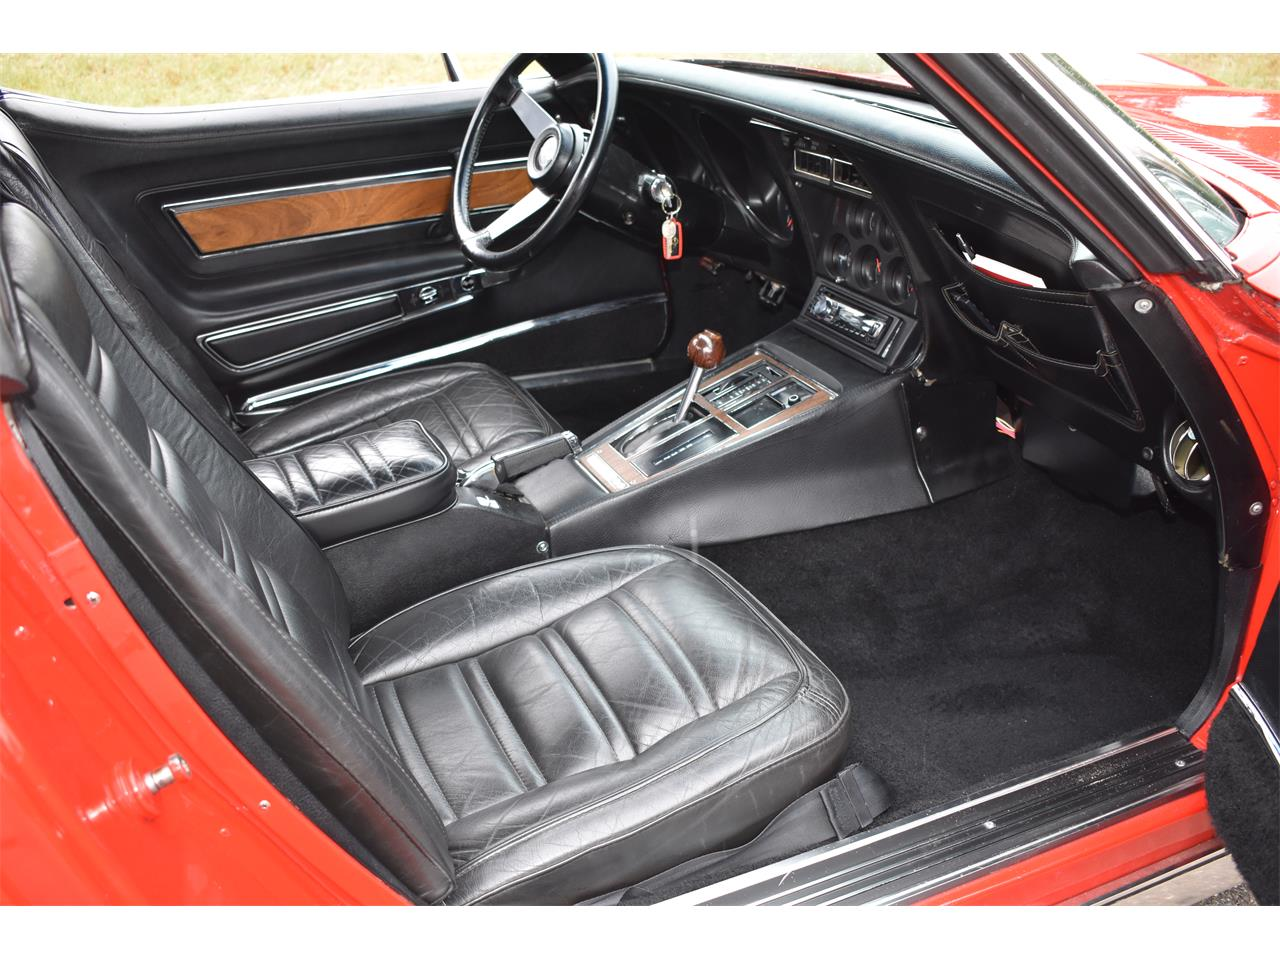 Large Picture of 1972 Chevrolet Corvette - $27,000.00 Offered by a Private Seller - OMCE